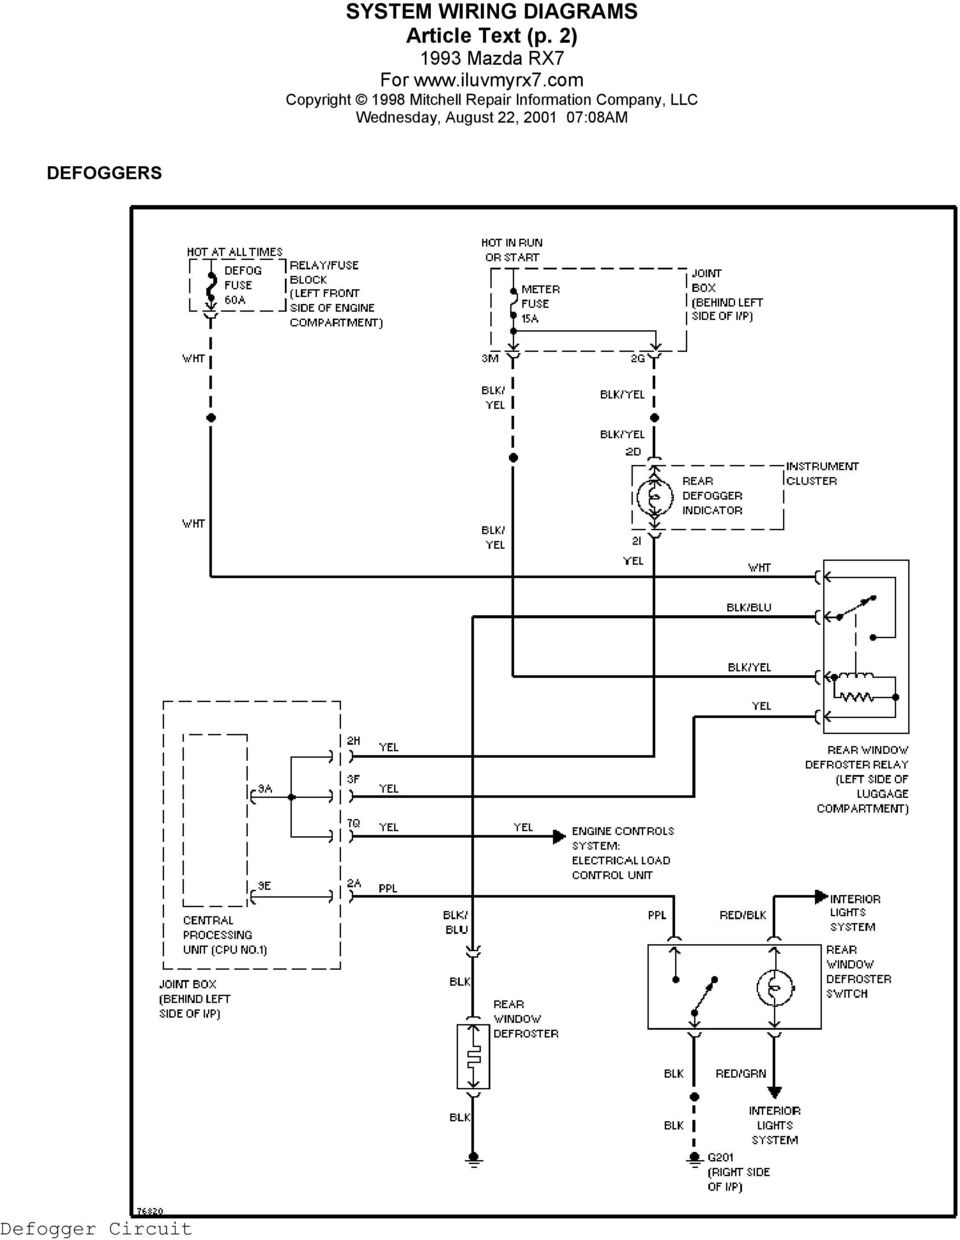 hight resolution of 4 system wiring diagrams article text p 3 horn horn circuit power antenna